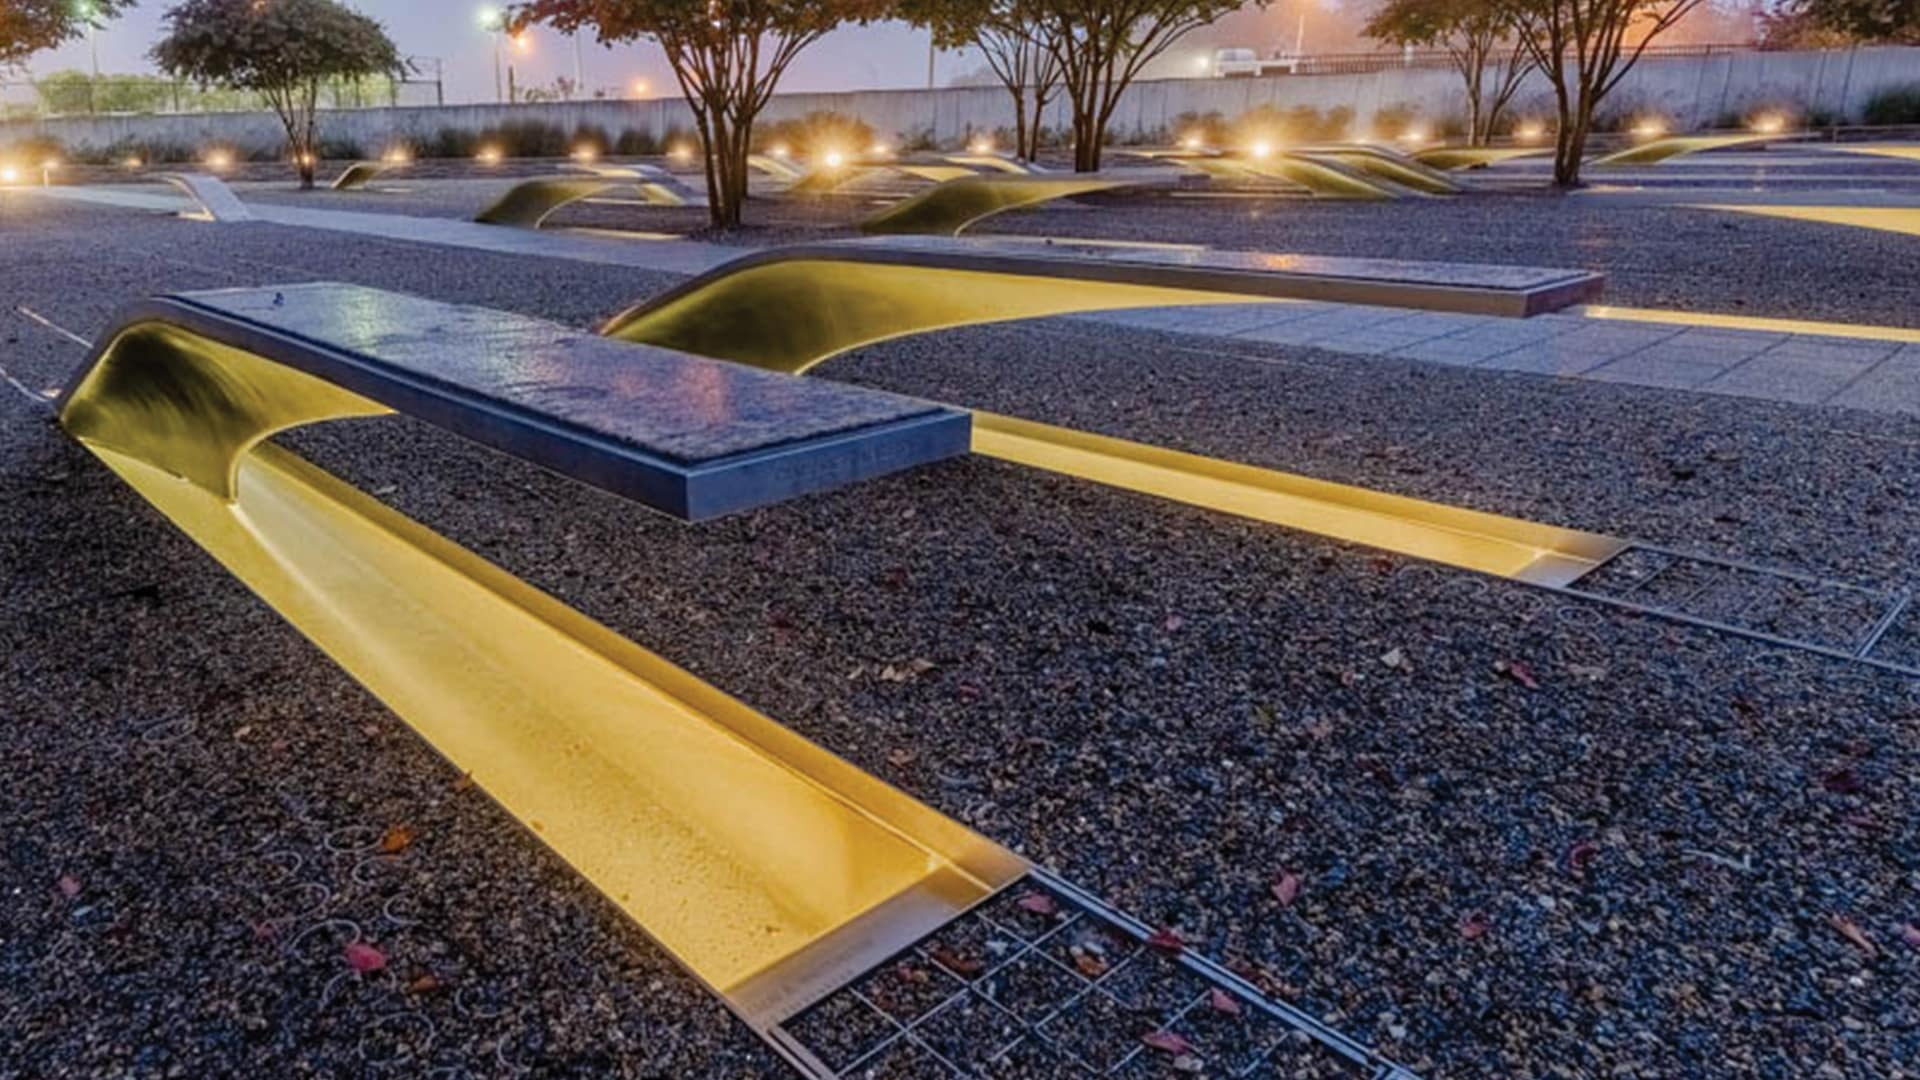 The National 9/11 Pentagon Memorial is a permanent outdoor memorial to the victims of the American Airlines Flight 77 during the 9/11 attacks, located in Arlington, VA featuring lighting products by Acuity Brands - Hydrel®. Project in collaboration with Aaroe Electrical Solutions LLC, Kaseman Beckman Advanced Strategies, and Acuity Brands agent Federated Lighting.   Photographer: Pete Albert